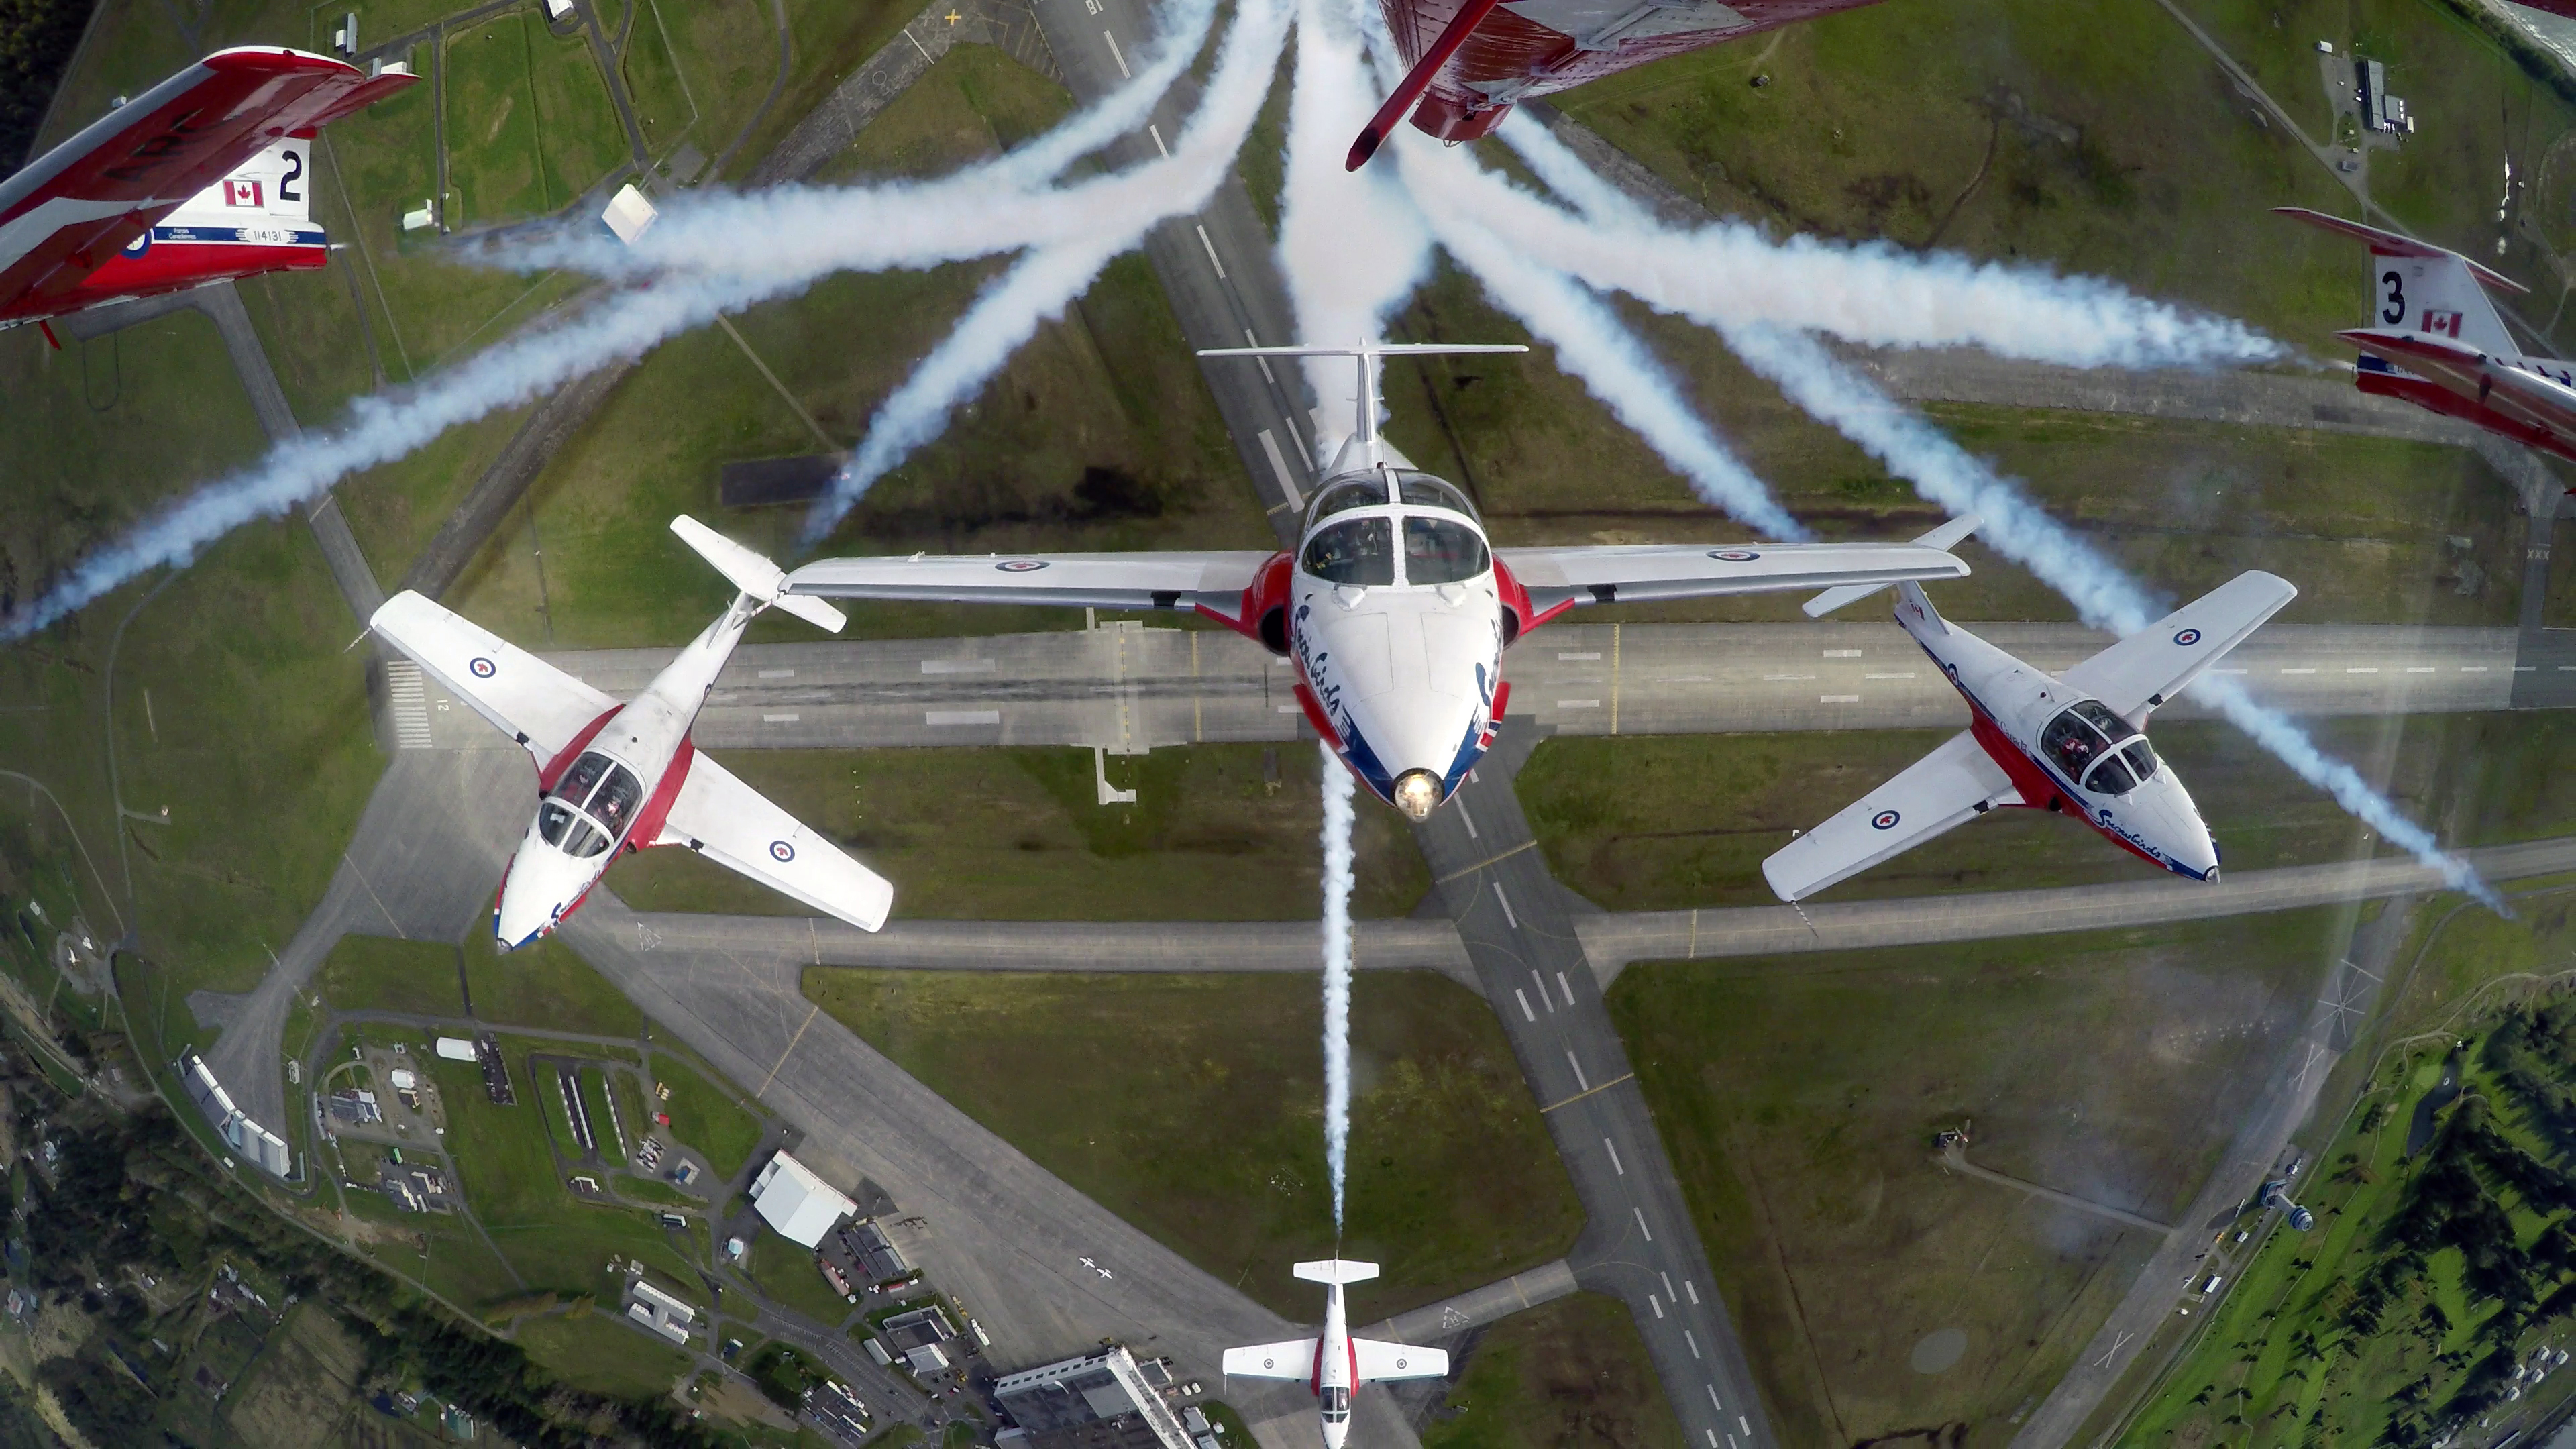 """The Canadian Forces Snowbirds air demonstration team breaking into the """"Canada Burst"""" during their spring training at 19 Wing Comox, British Columbia, in April 2015, is captured by the TankCam installed in a modified smoke tank mounted on the belly of the team leader's CT-114 Tutor aircraft. The tank holds three high-performance cameras able to capture video and imagery of the entire formation in flight. PHOTO: DND"""